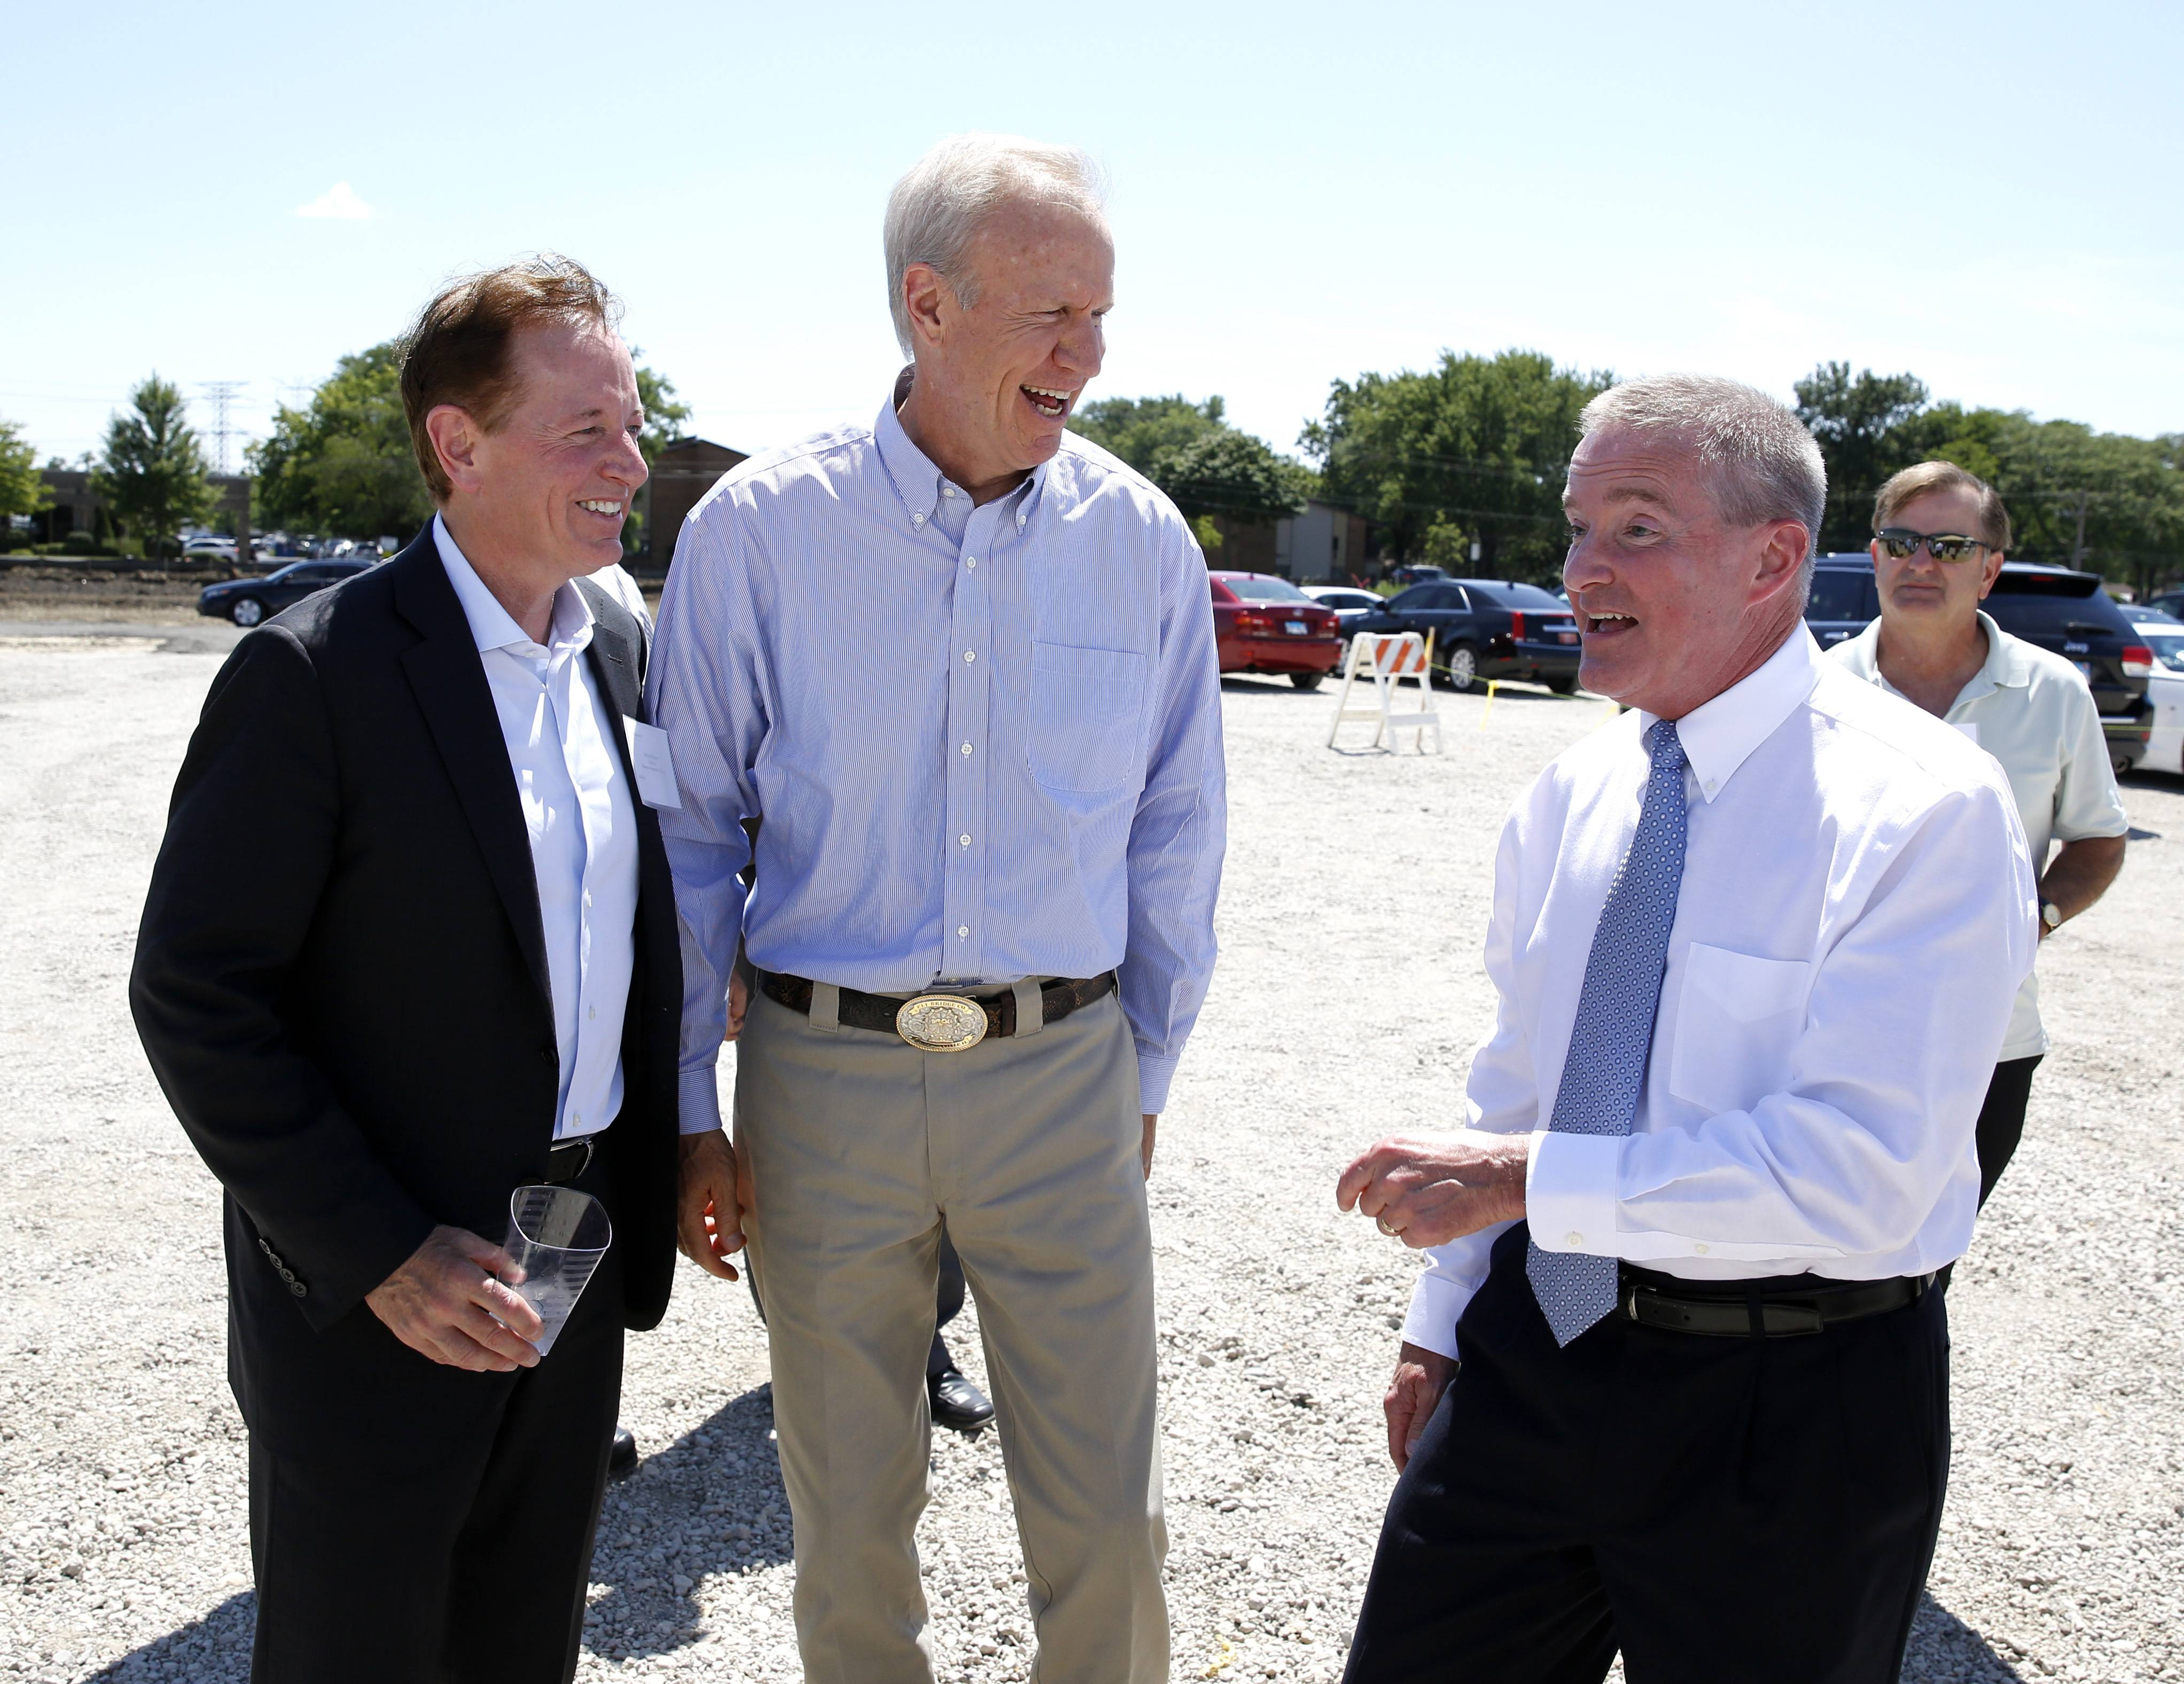 A new $1 billion technology park on 85 acres between East Higgins Road and Oakton Street on the north side of Elk Grove Village is being developed. Above, Michael Brennan, chairman of Brennan Investment Group, Gov. Bruce Rauner and Elk Grove Mayor Craig Johnson talk before a groundbreaking ceremony.